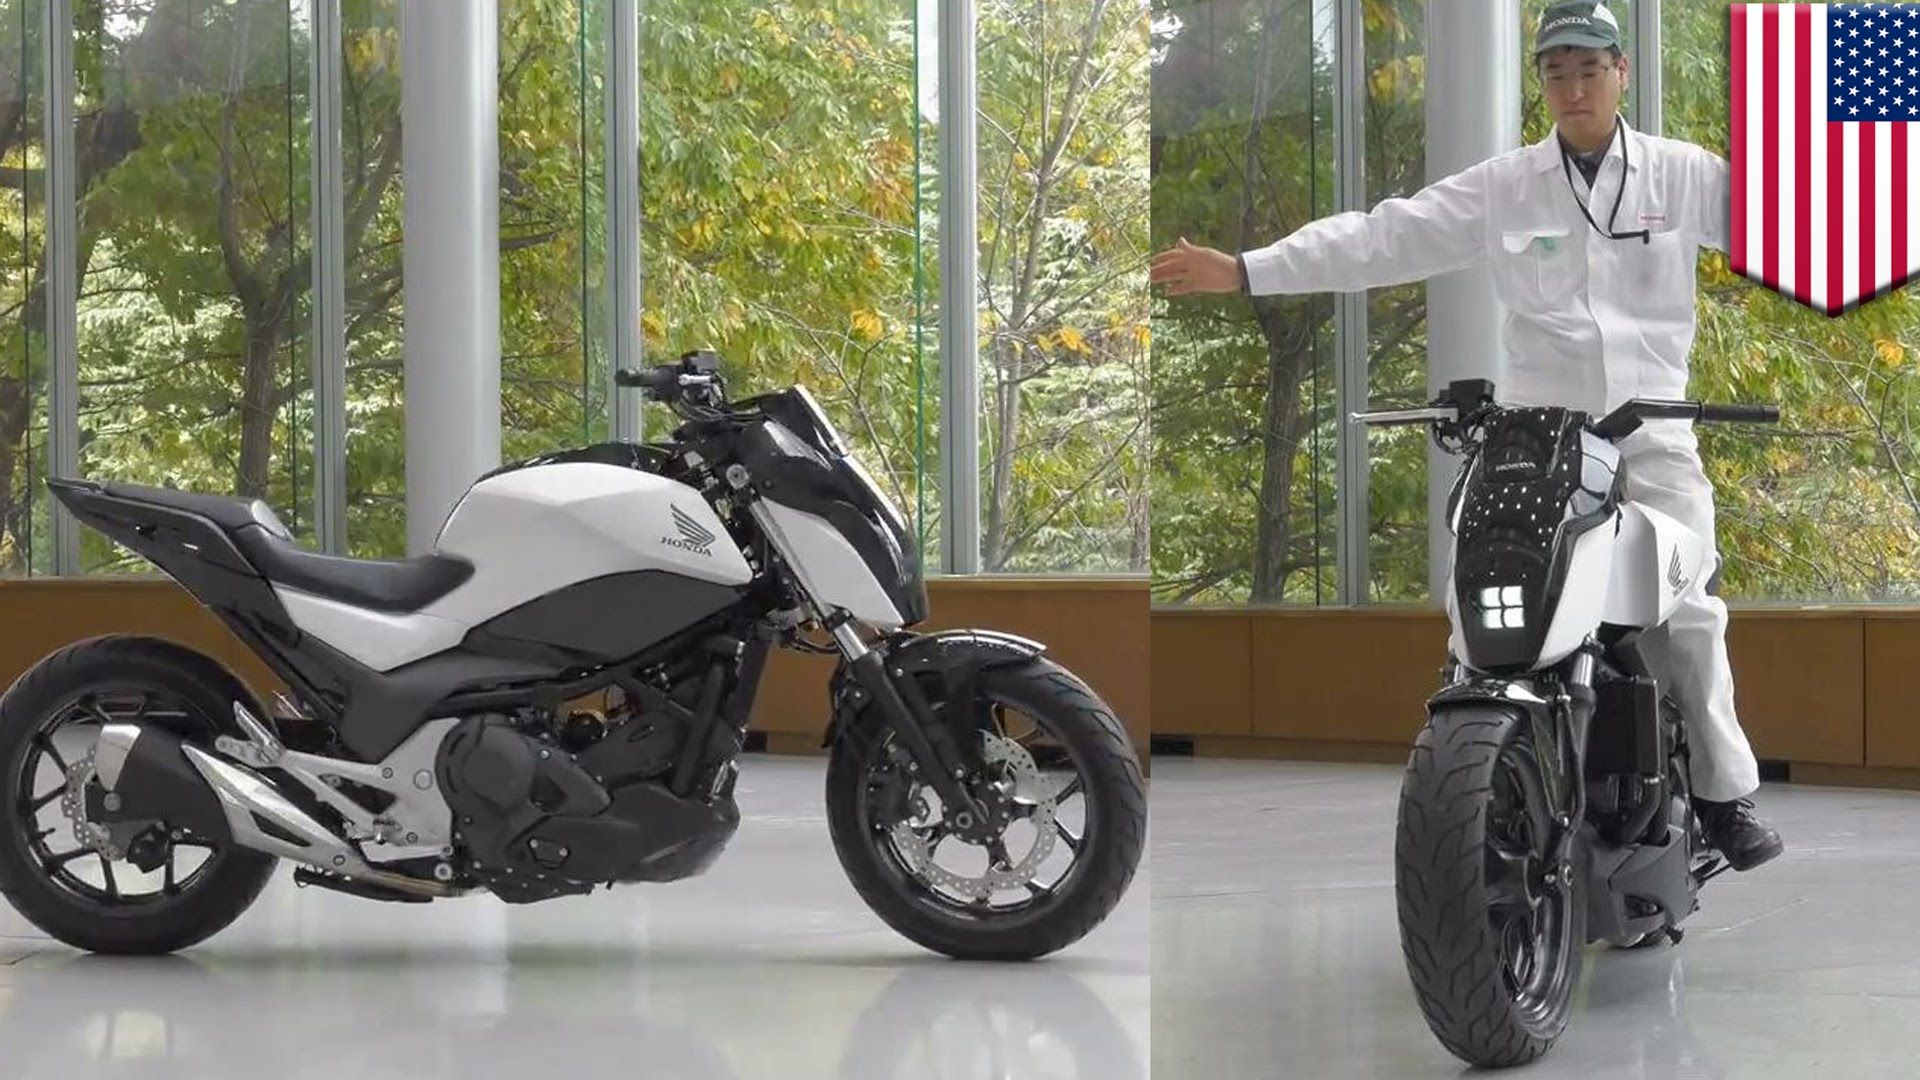 Future motorcycles: Honda self-balancing Riding Assist tech keeps bike b...